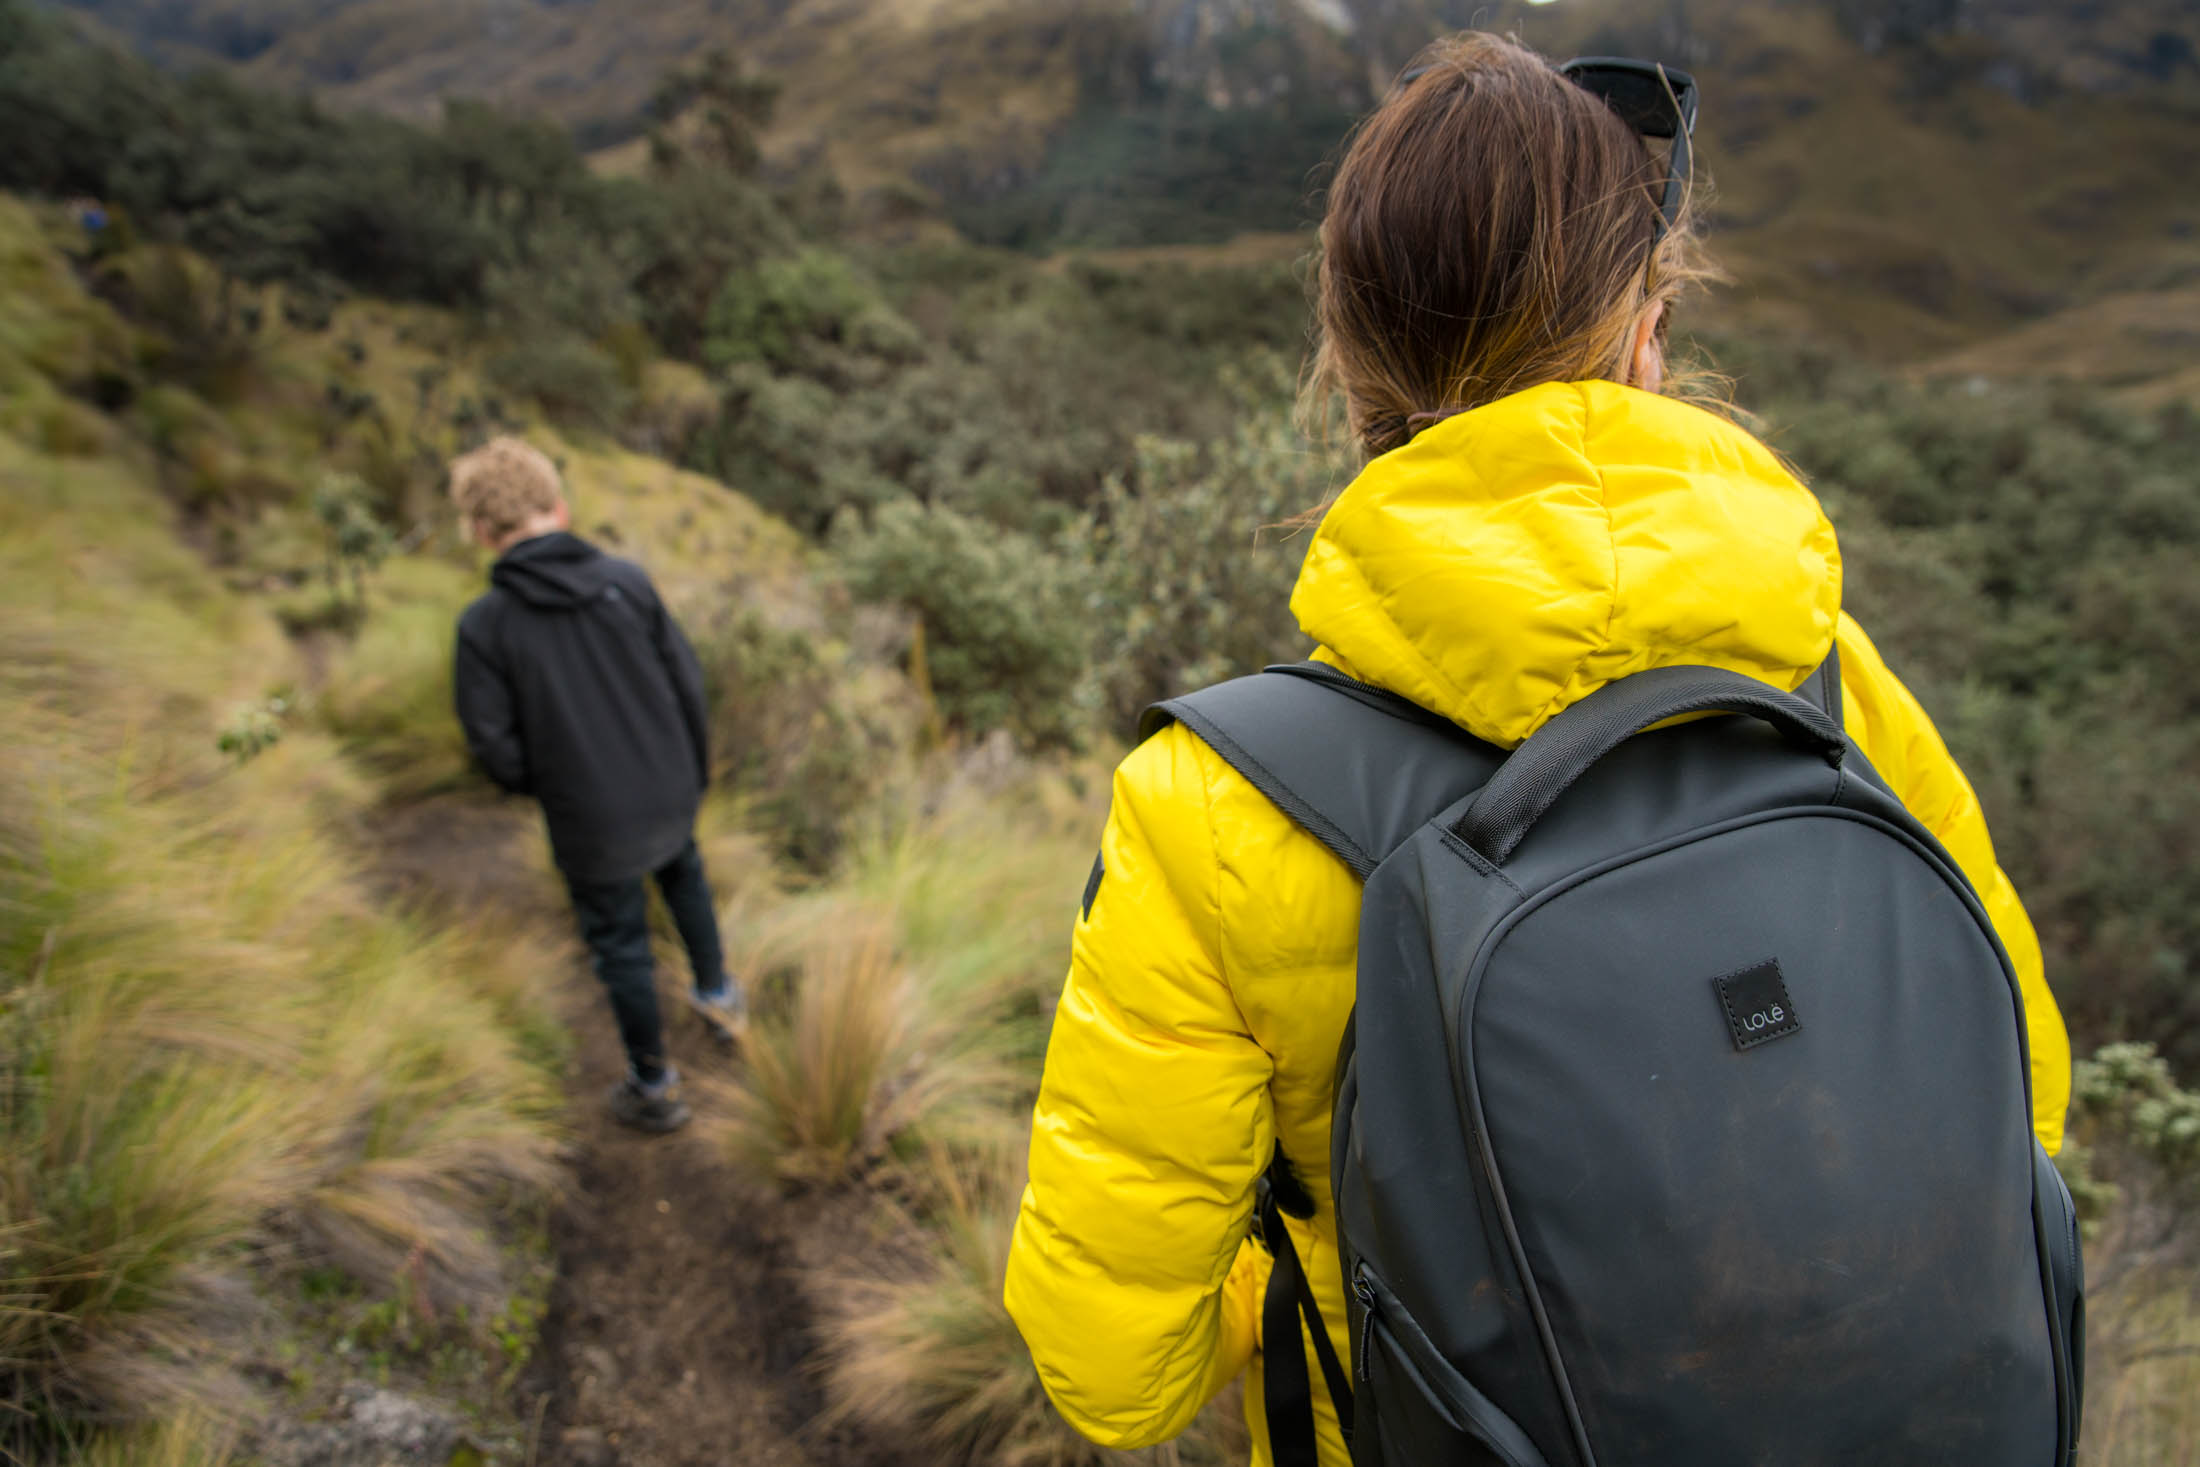 Packable puffer jackets, wear-everywhere dresses, leggings, commuter bags with rain hoods — Lolë, a fav for ethical clothing, is perfect for adventuring!